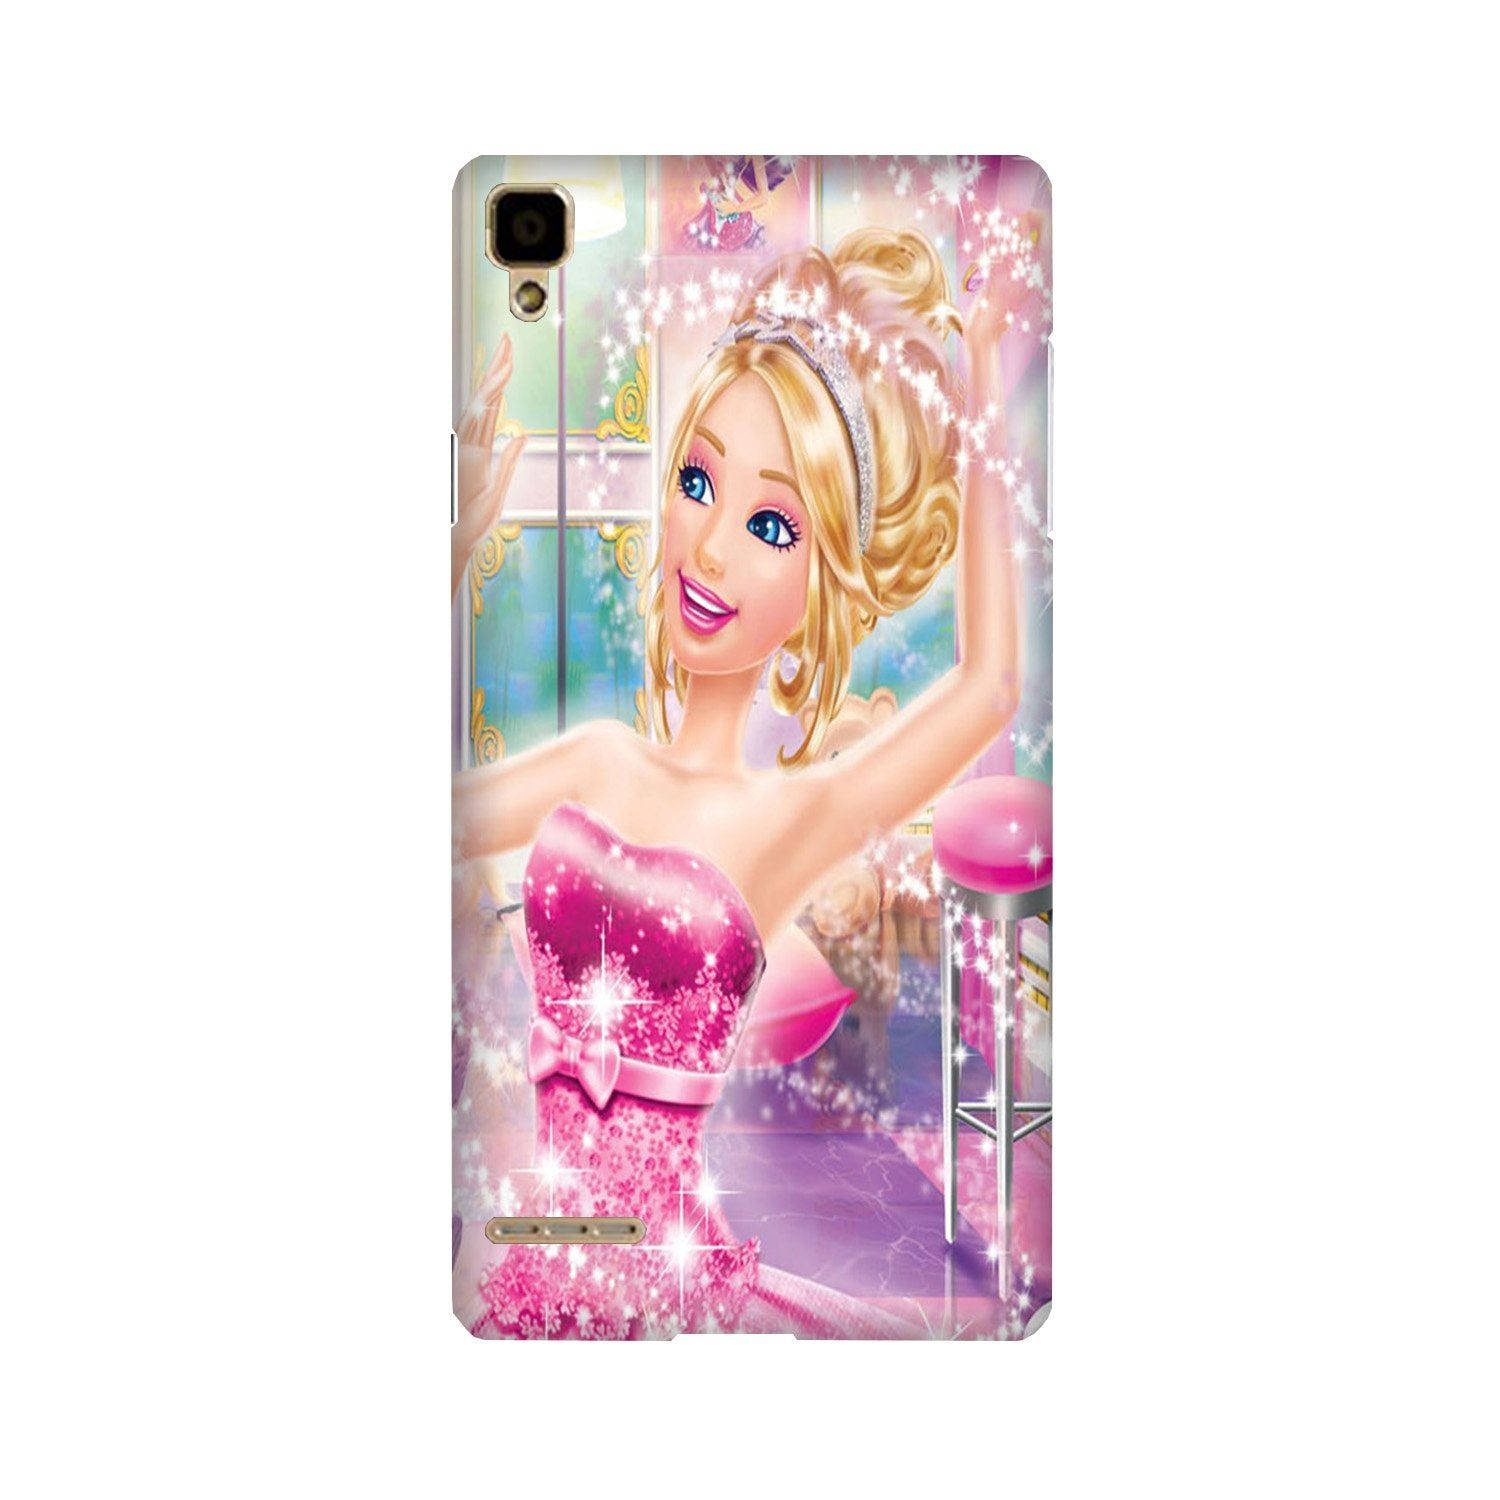 Princesses Case for Oppo F1